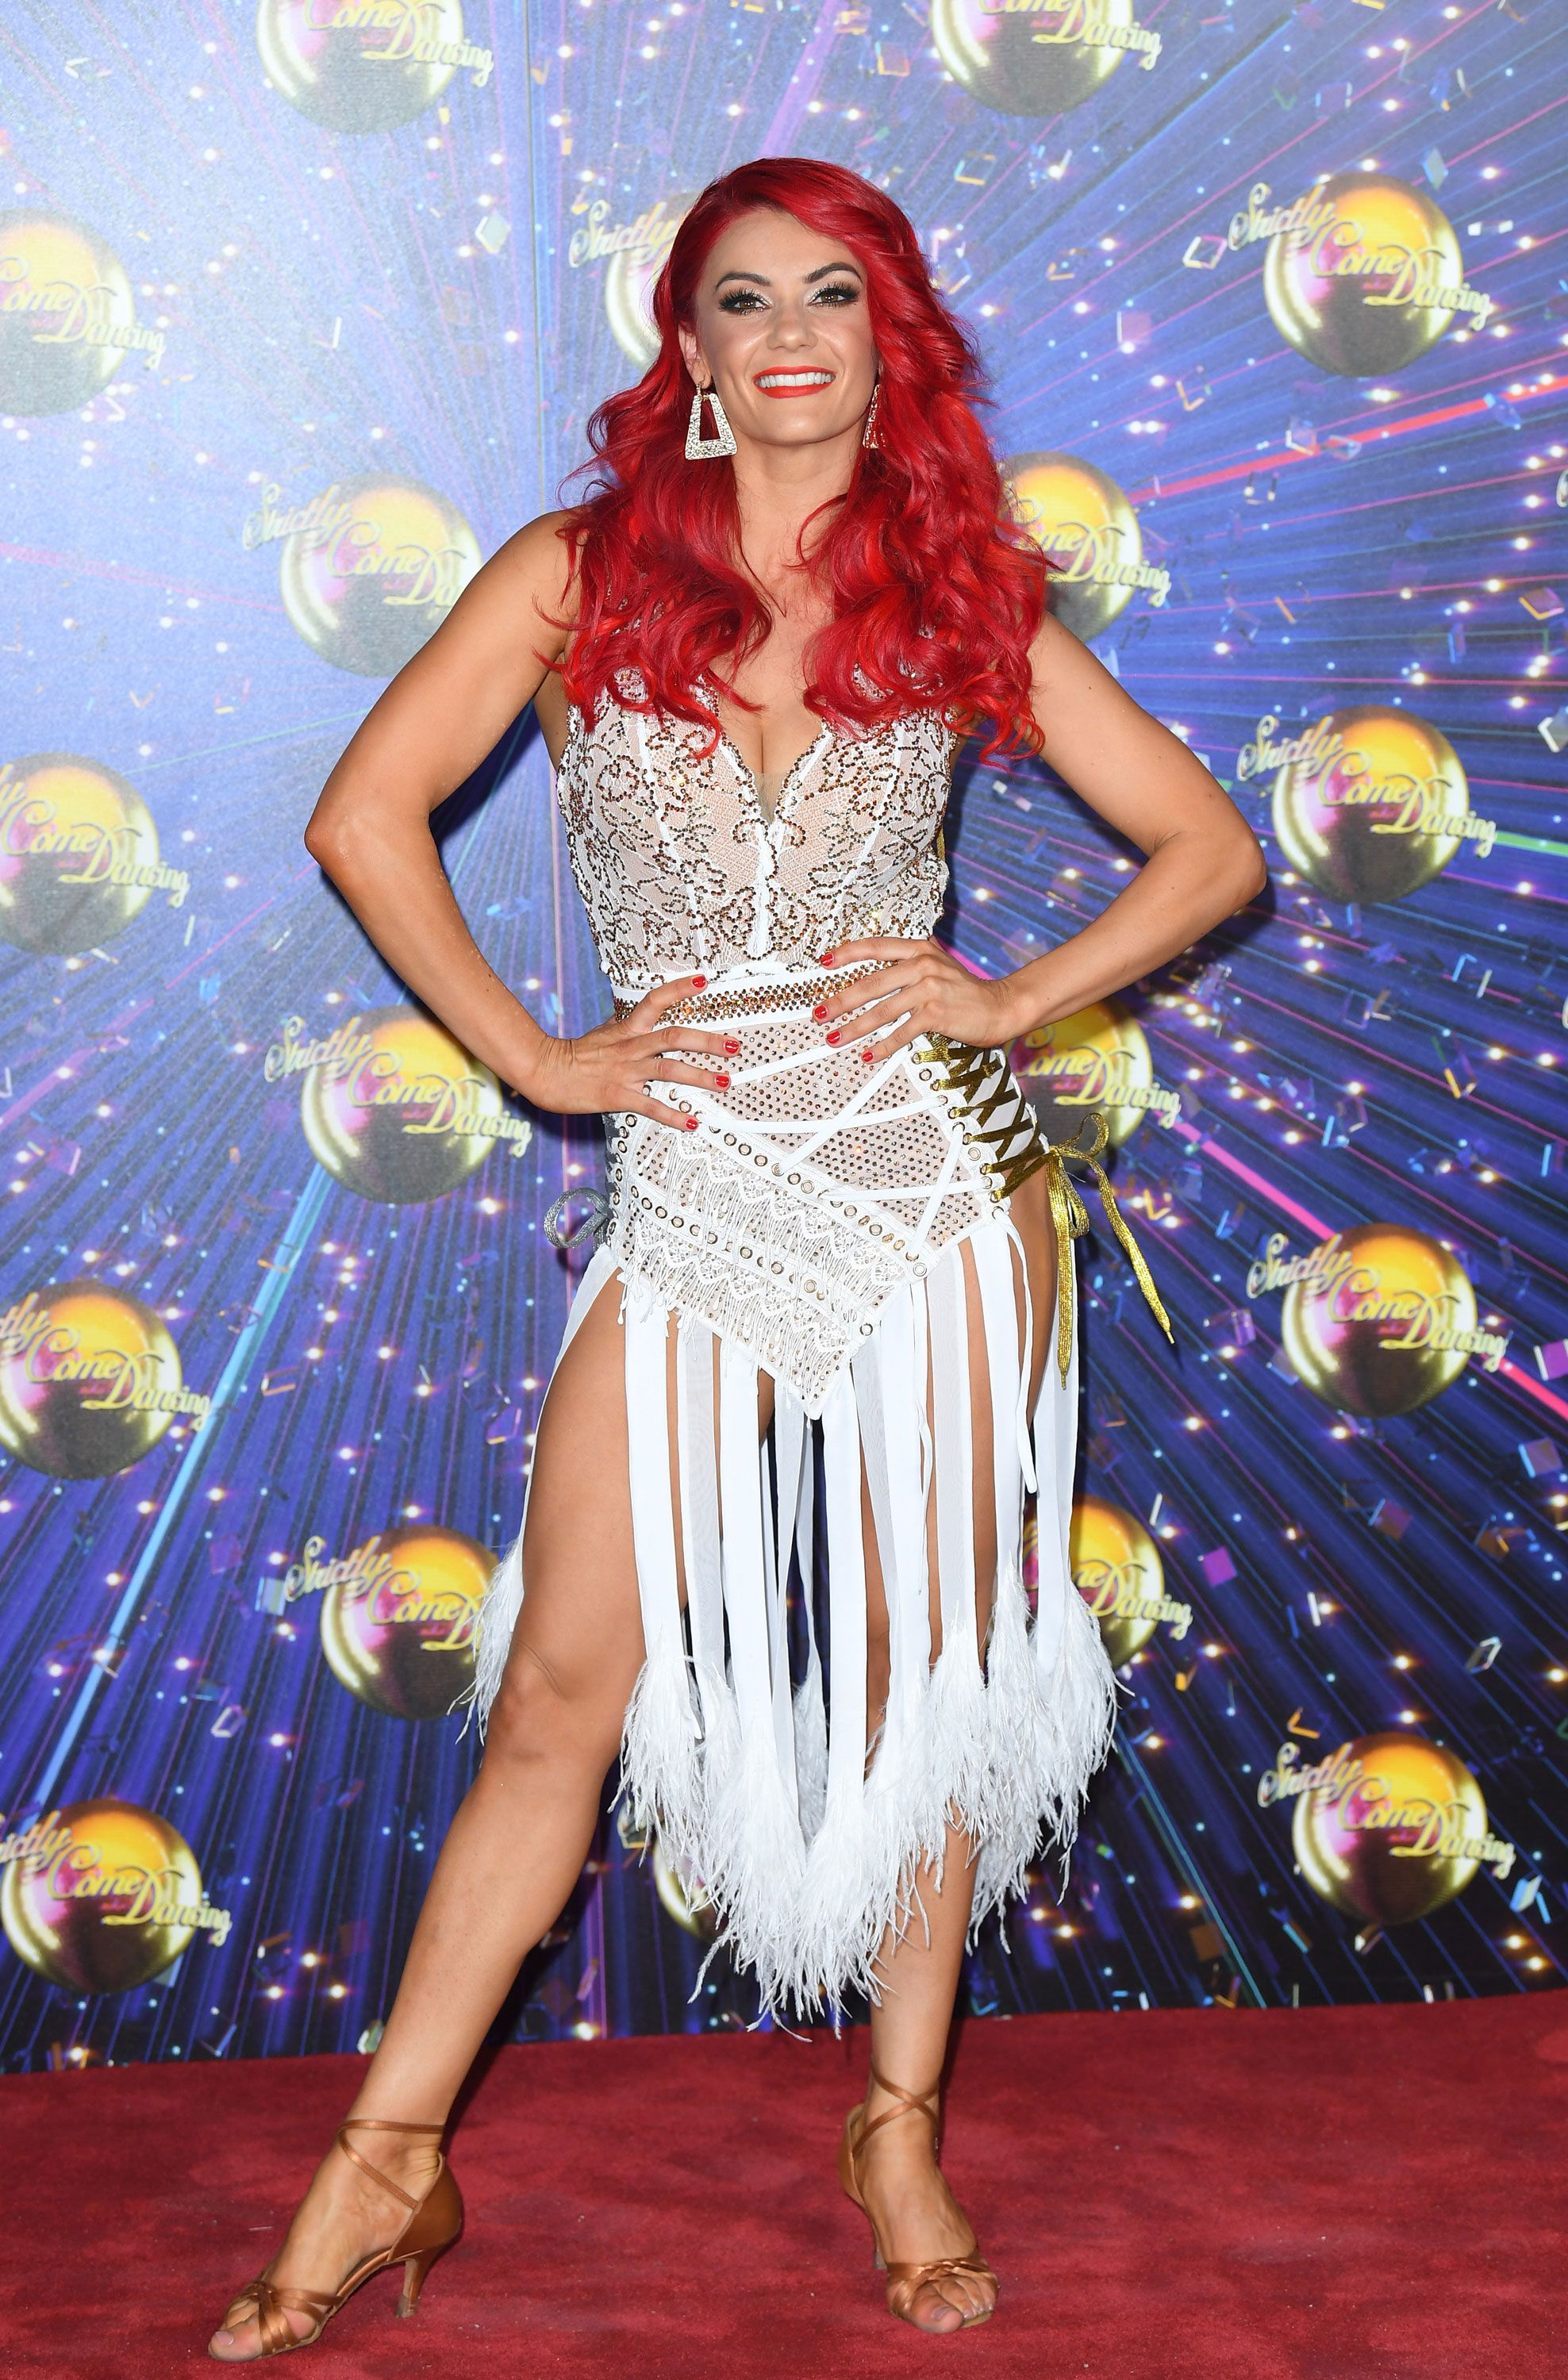 Strictly Come Dancing pro Dianne Buswell unveils hair transformation after exit from the show